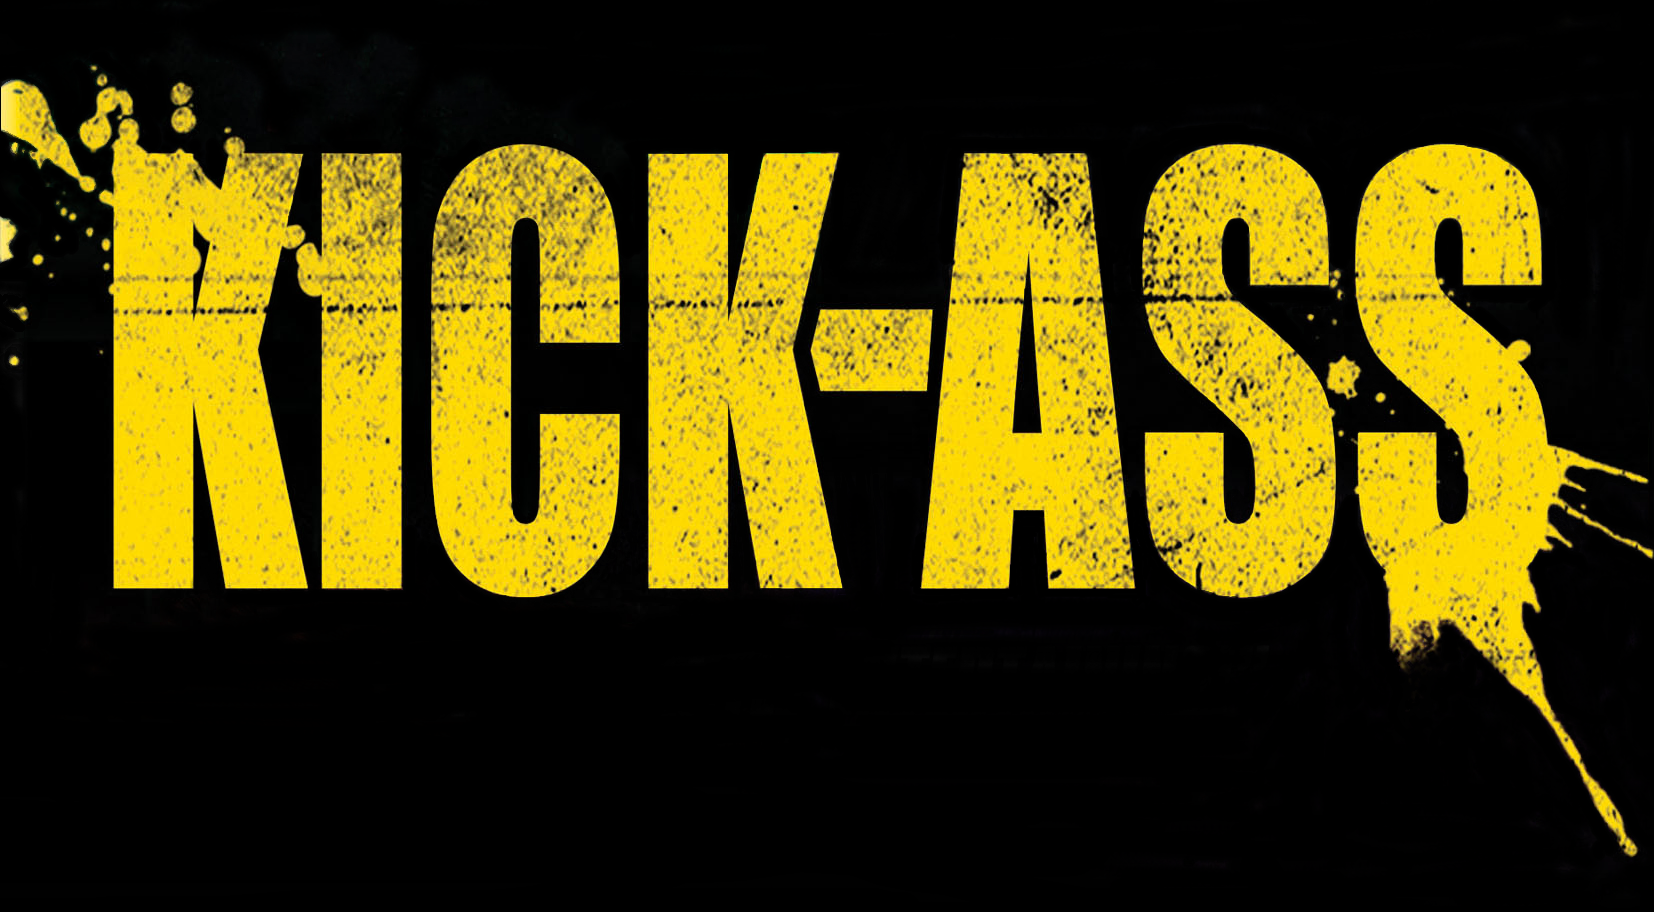 Kick ass logos naked